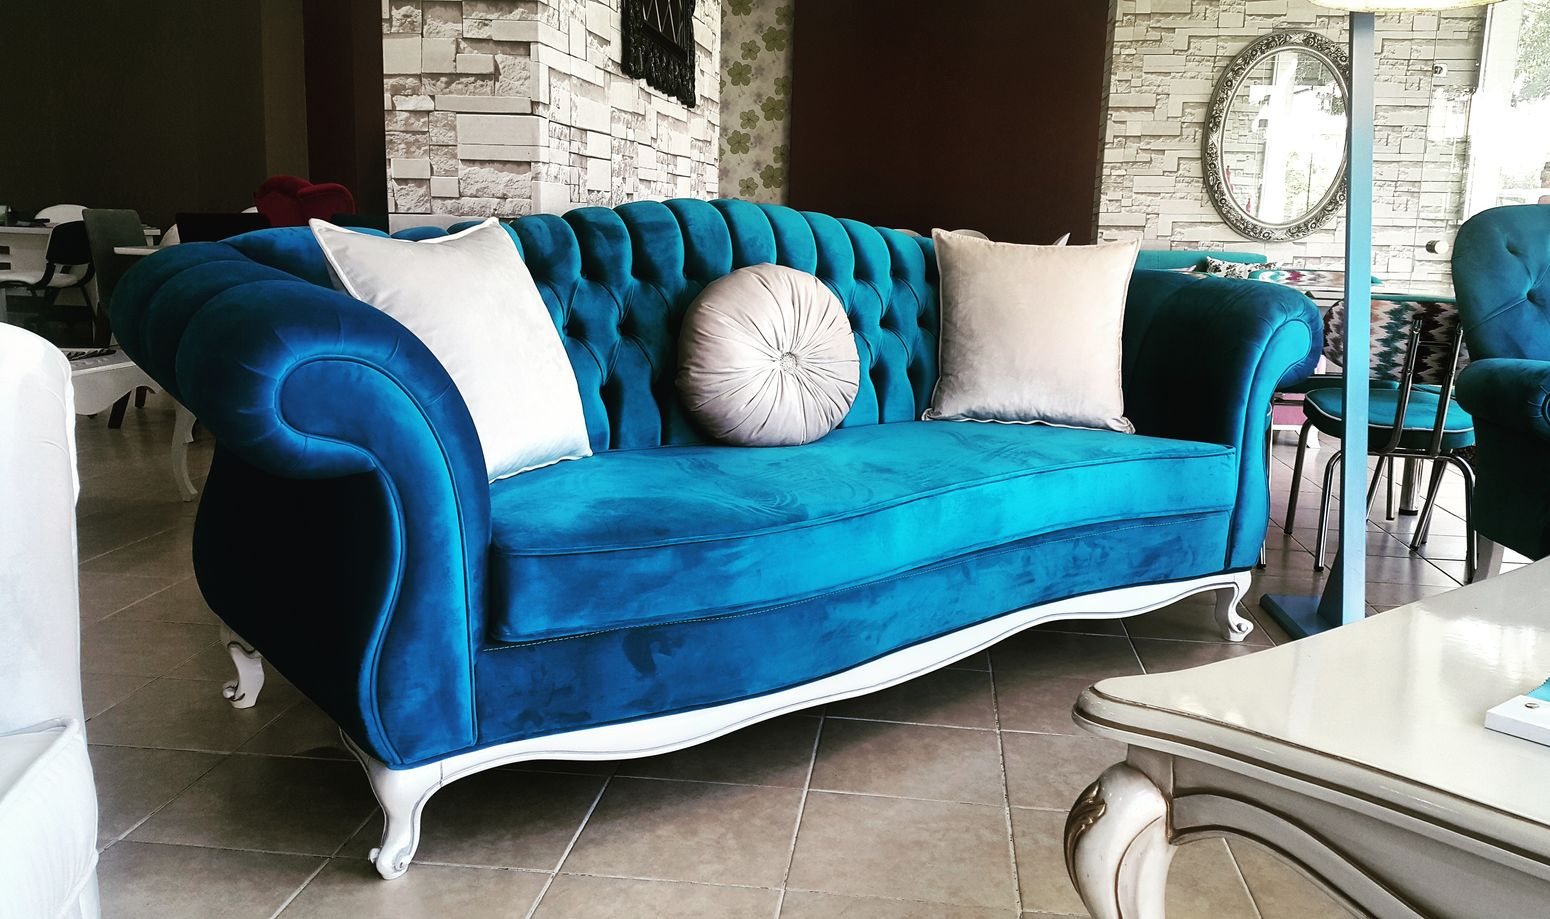 Exellent Work Handmade By Me Avantgarde Sofa Designed By Me Turkish Designer Made With Love In Adana